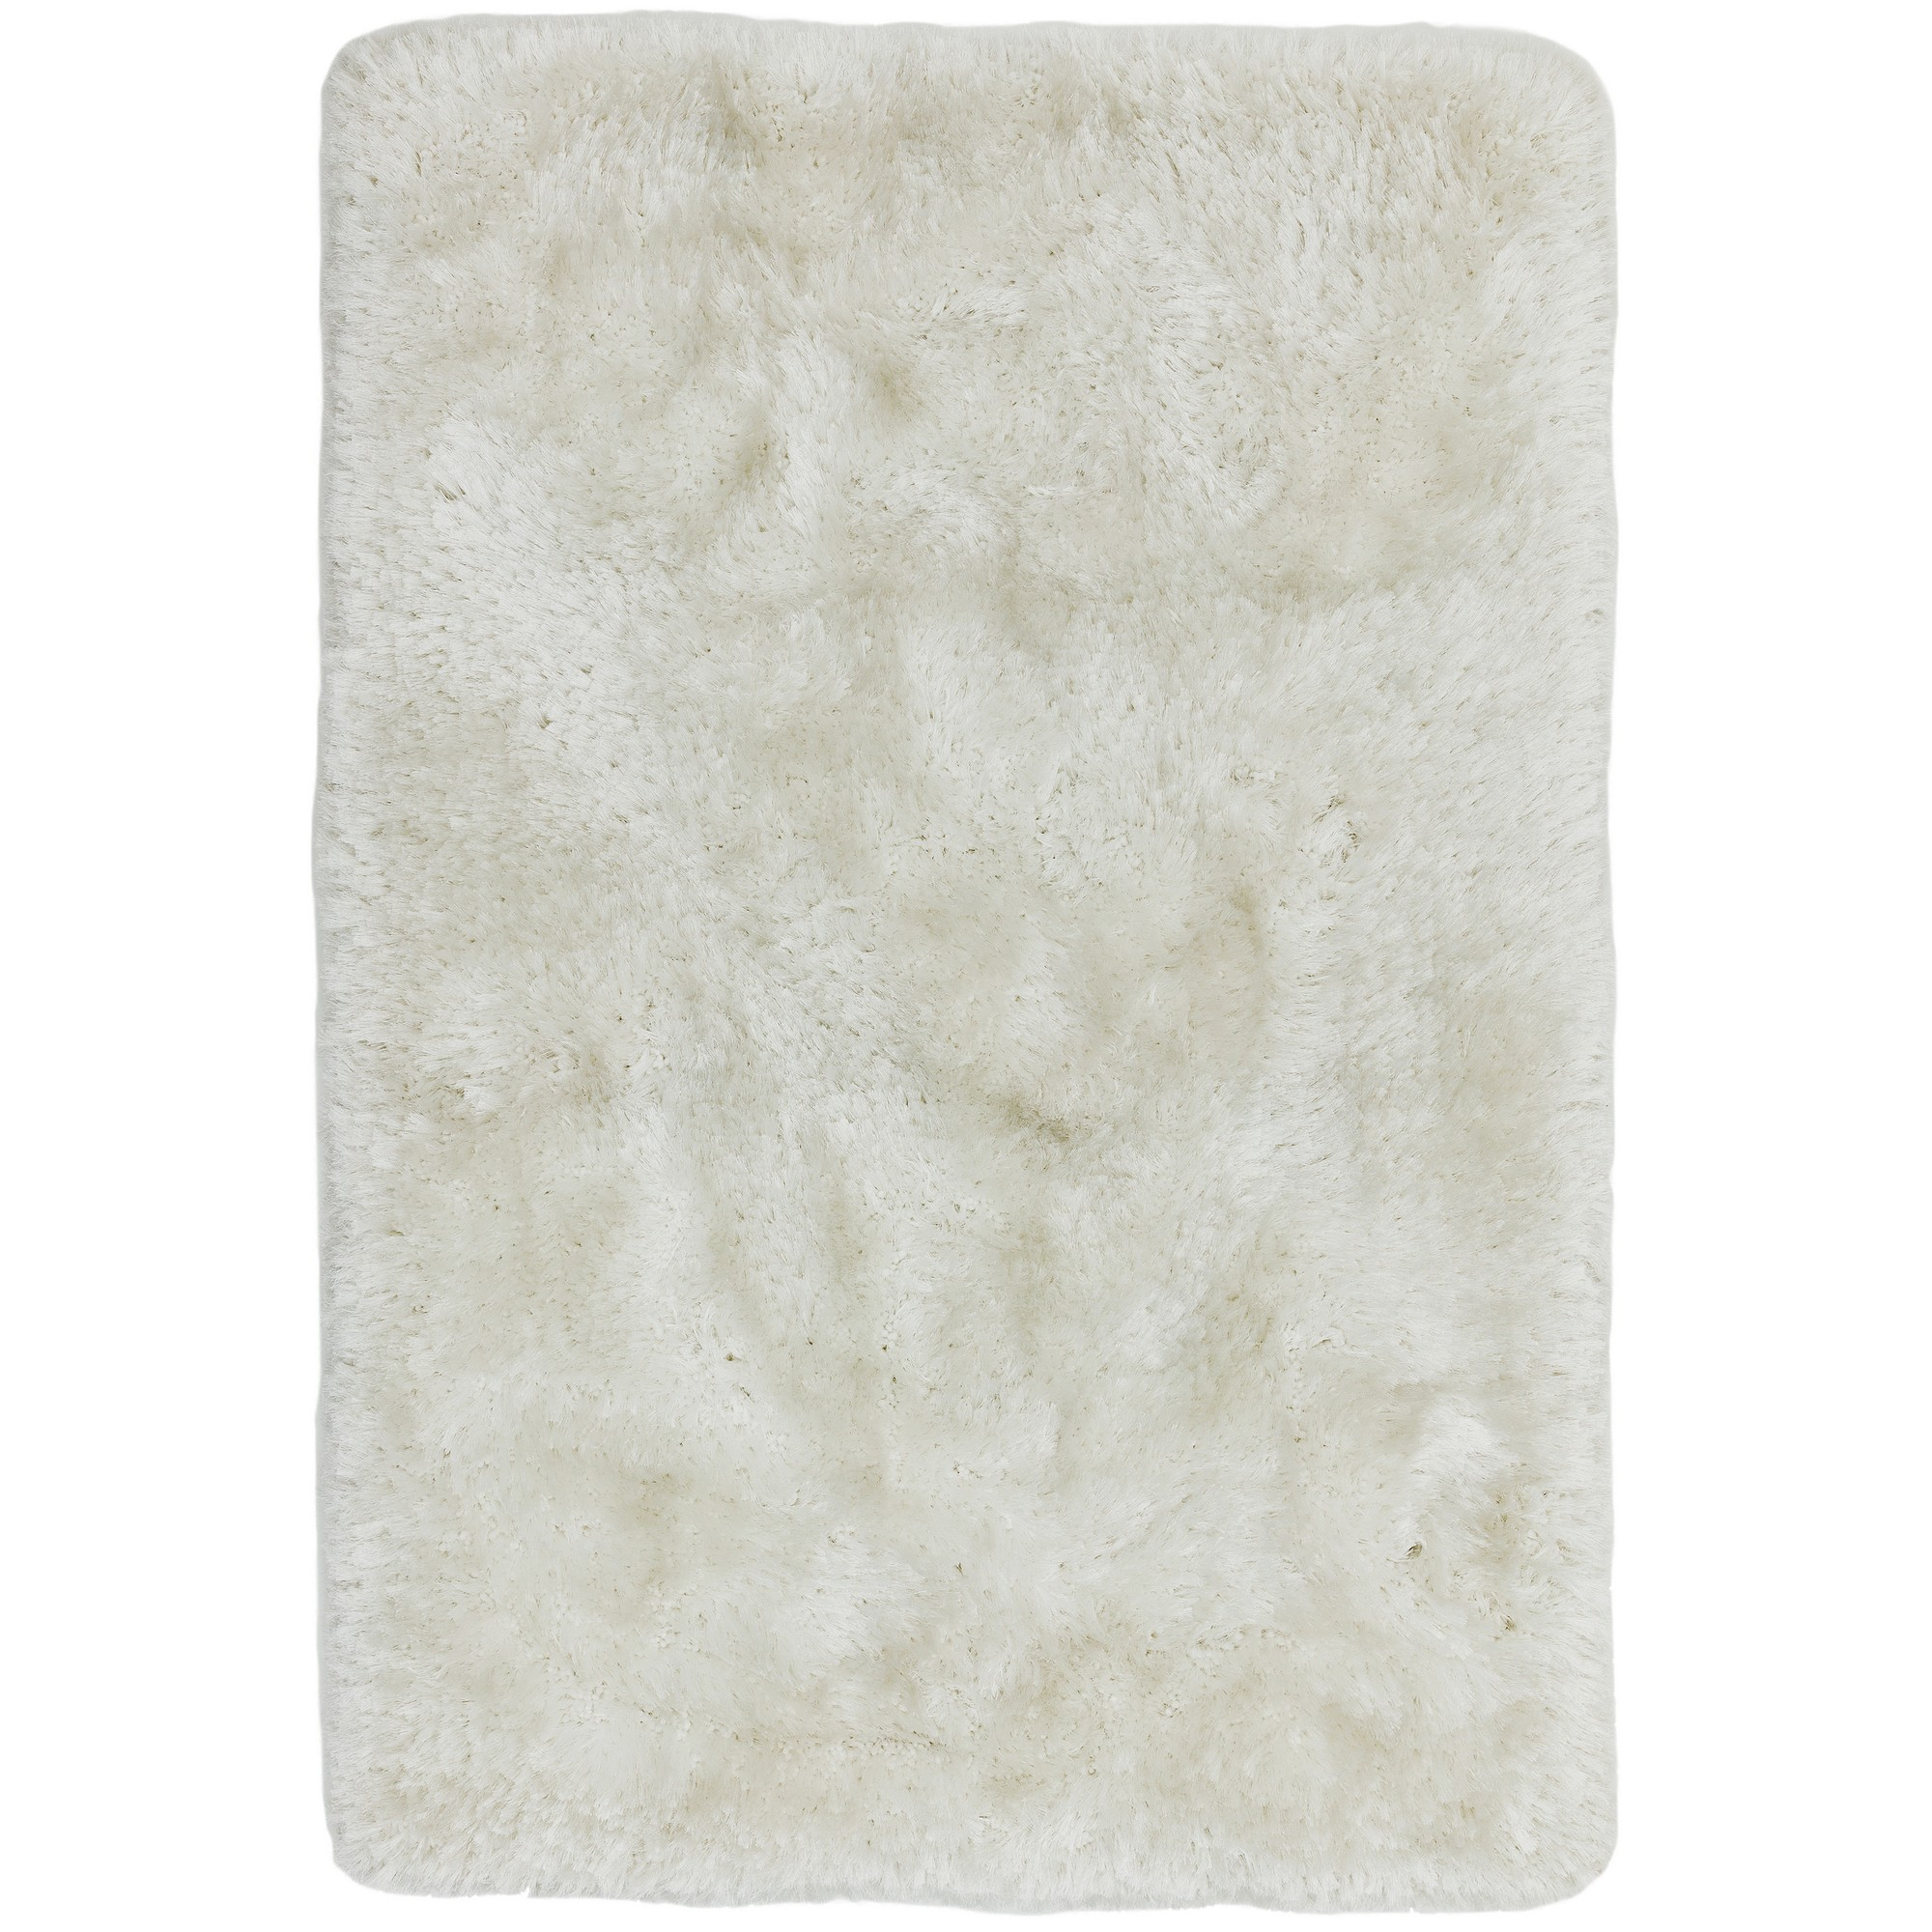 Plush Rug Zinc: Plush Shaggy Rugs In Rust Buy Online From The Rug Seller Uk